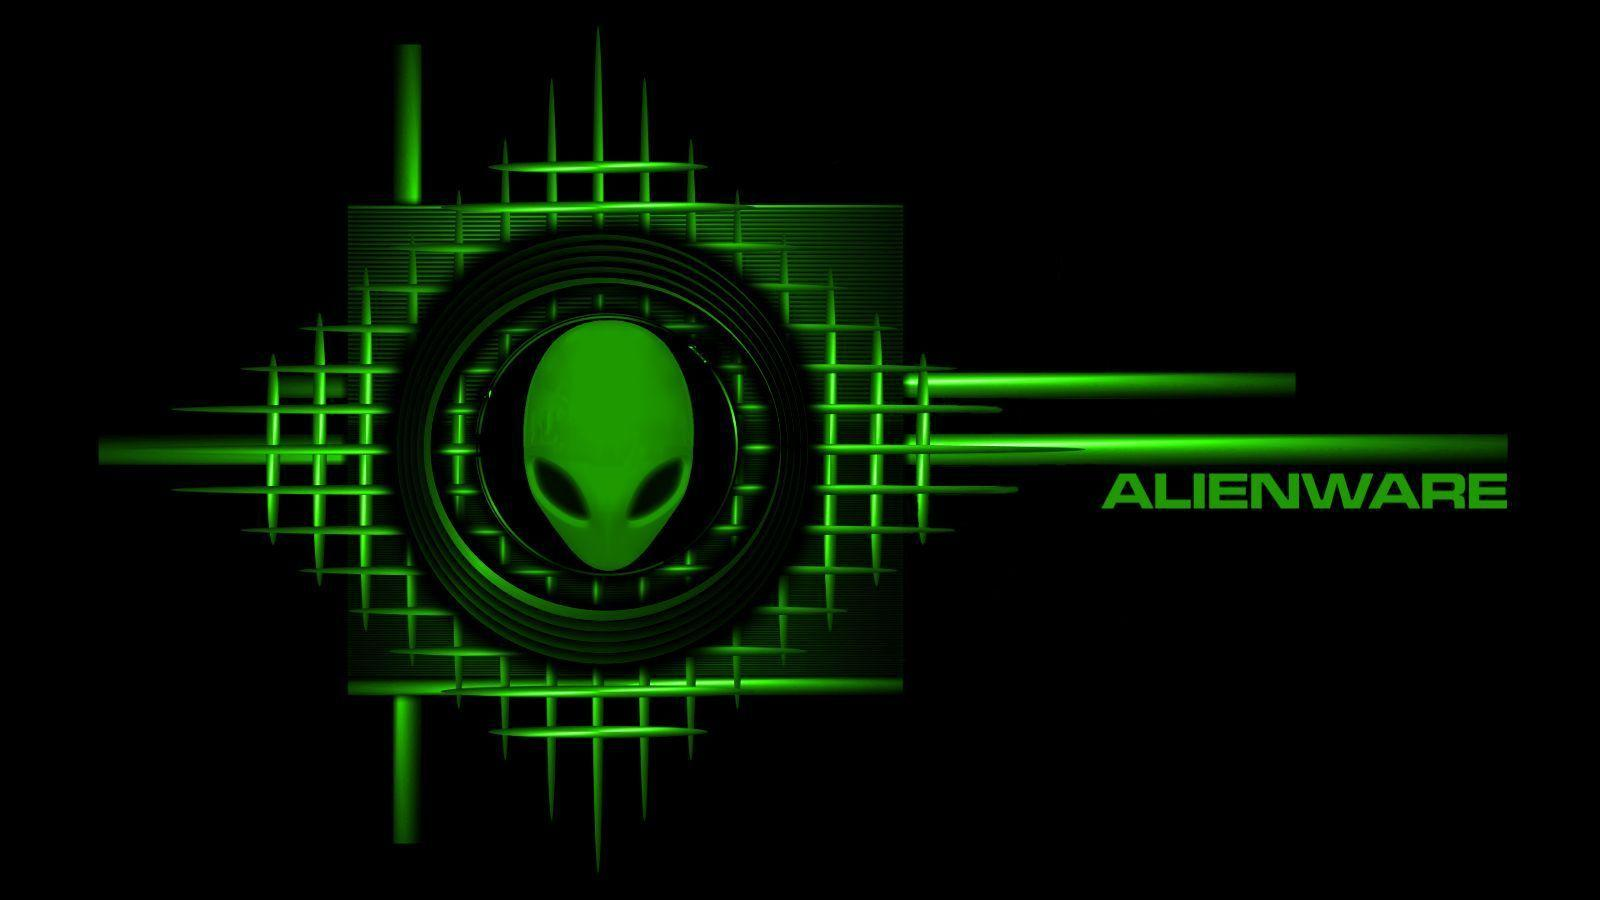 alienware wallpaper green hd - photo #22